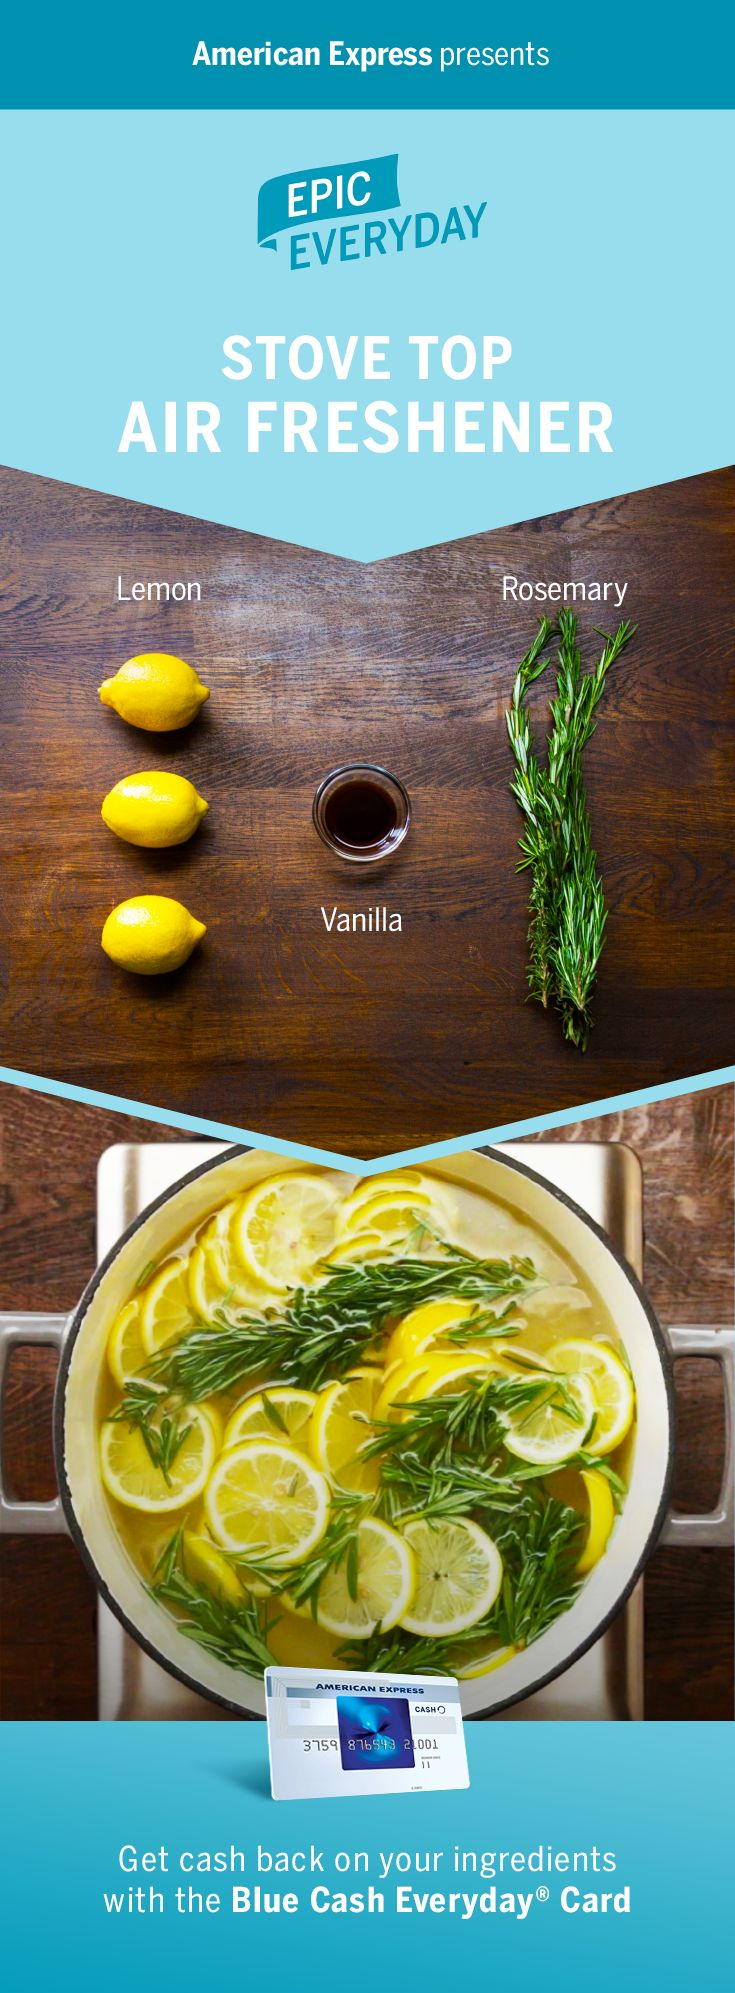 Need a living room upgrade? We teamed with Buzzfeed for a natural trick to keep your home or apartment smelling fresh. Just simmer lemon, rosemary, and vanilla extract to create a welcoming scent. It's an easy, simple DIY project that adds an epic fragrance to the house. Plus, party guests will love it! Get cash back on purchases with the Blue Cash Everyday Card from American Express. Terms apply. Learn more at americanexpress.com/epiceveryday. Click the pin for more living room upgrades.